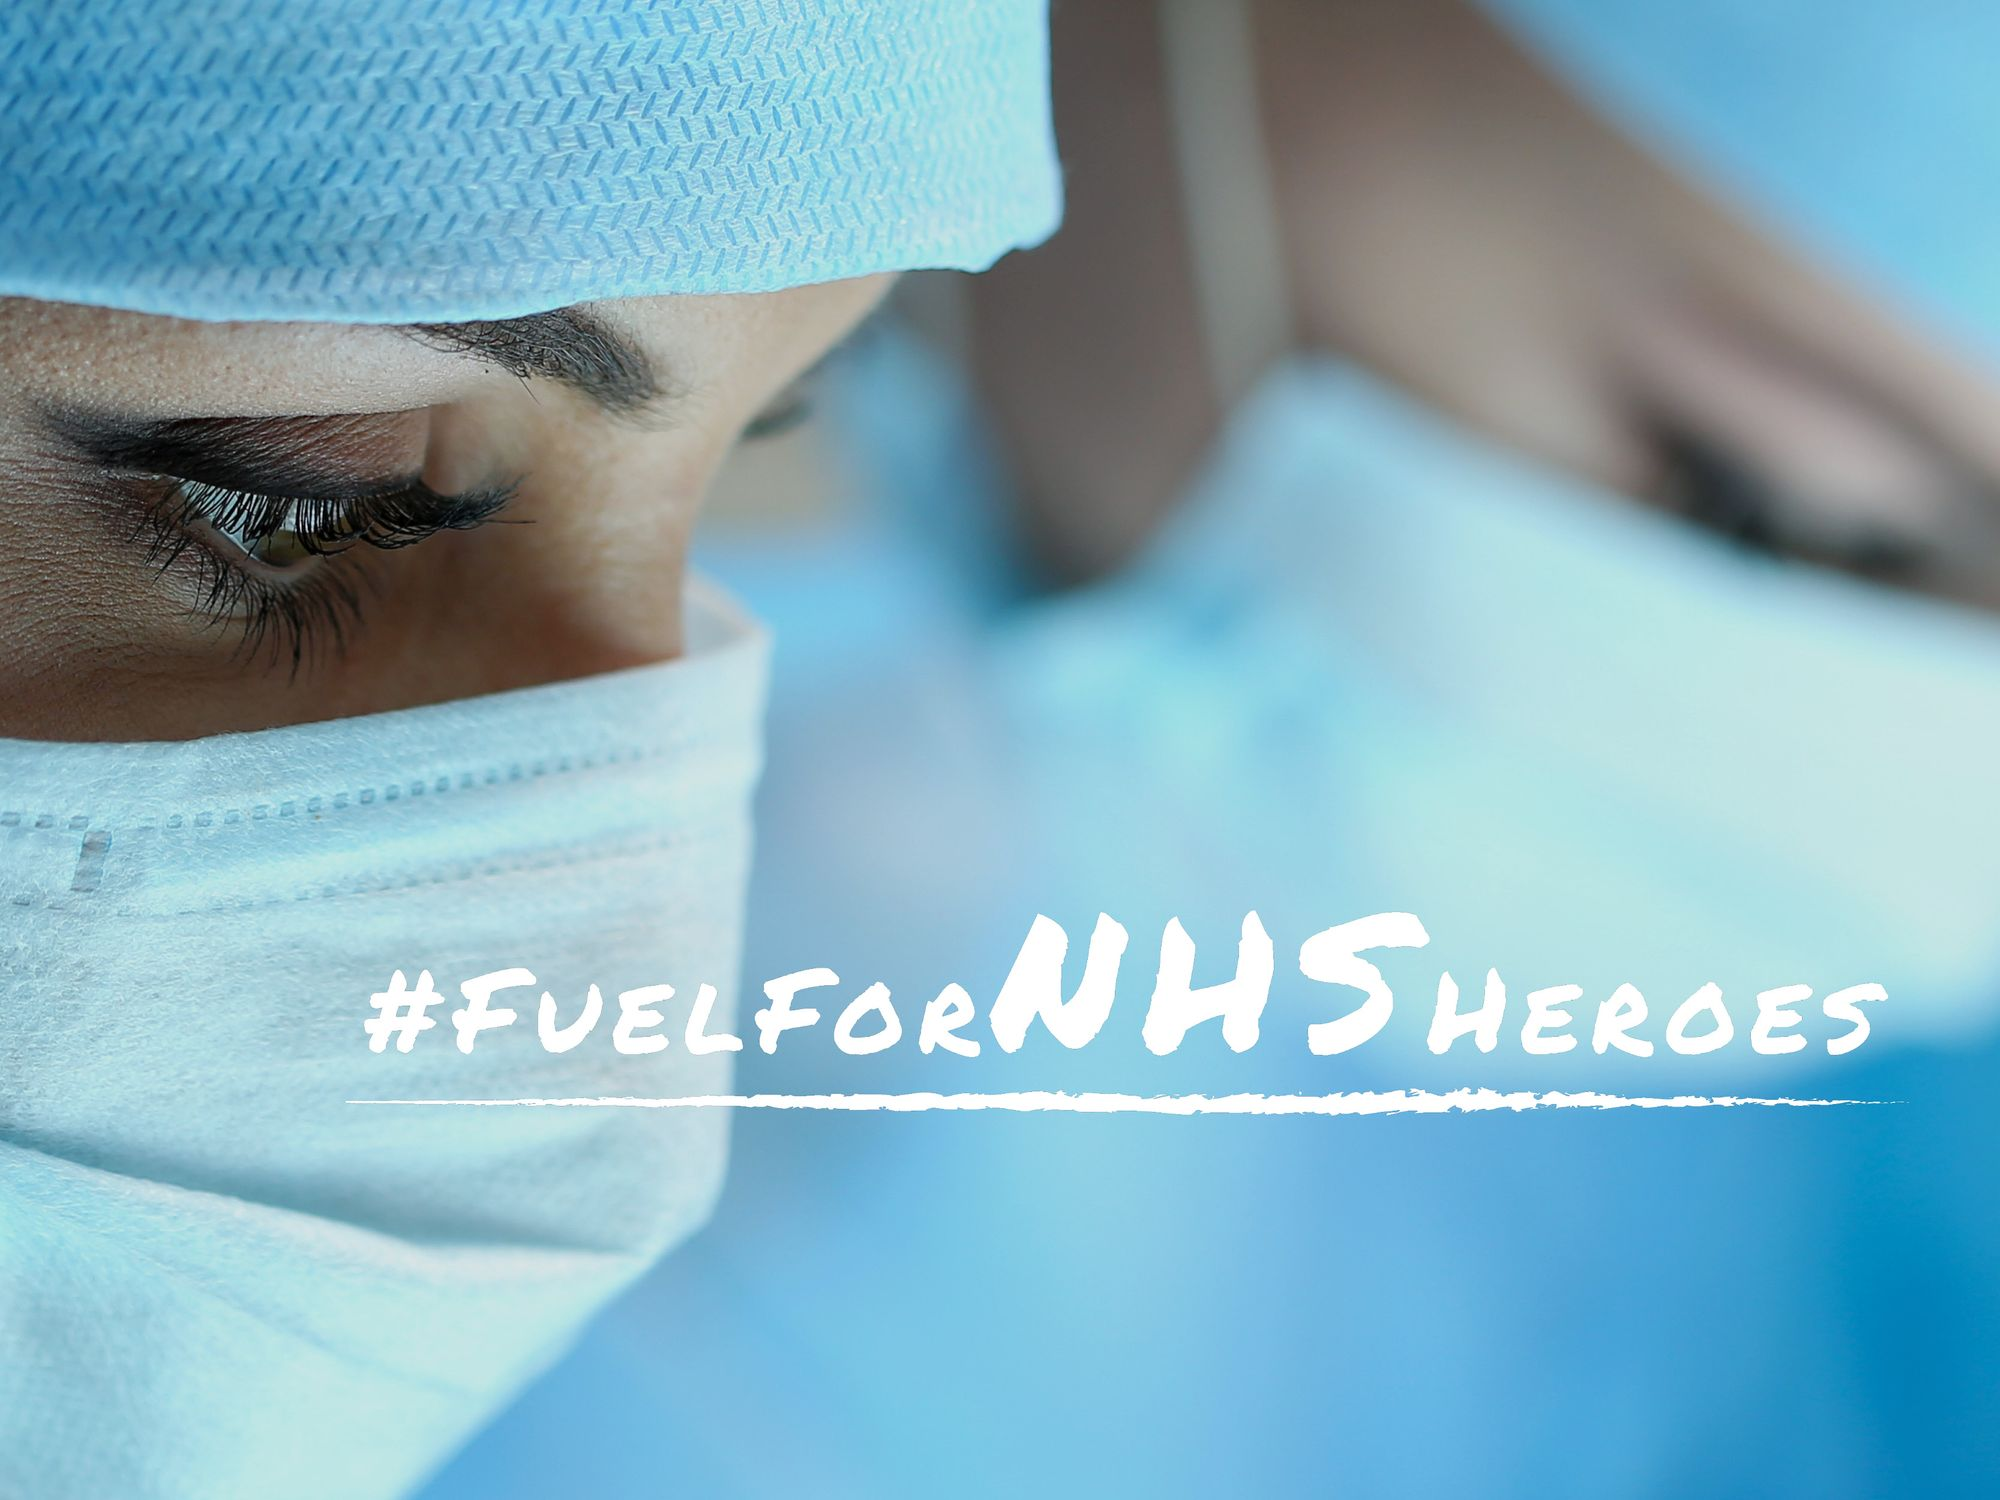 TheConduit has created the #FuelforNHSHeroes campaign to feed frontline NHS staff